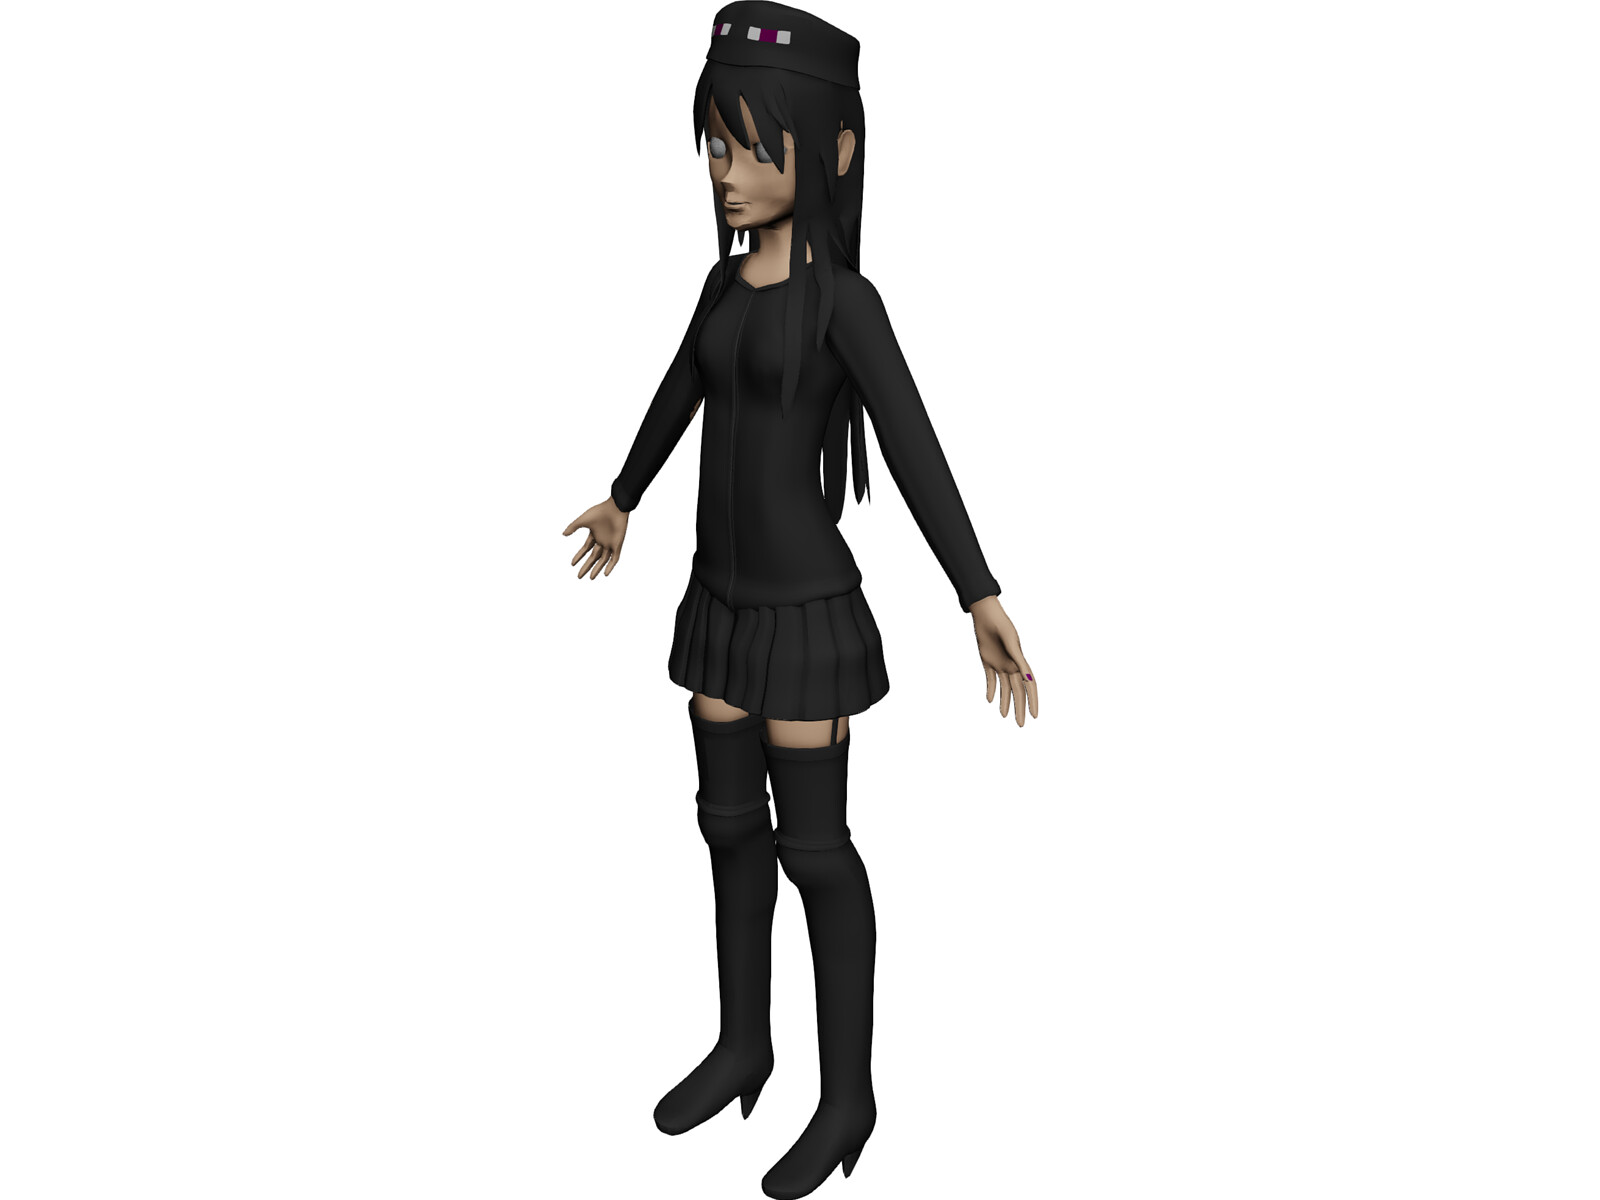 Andr the EnderGirl